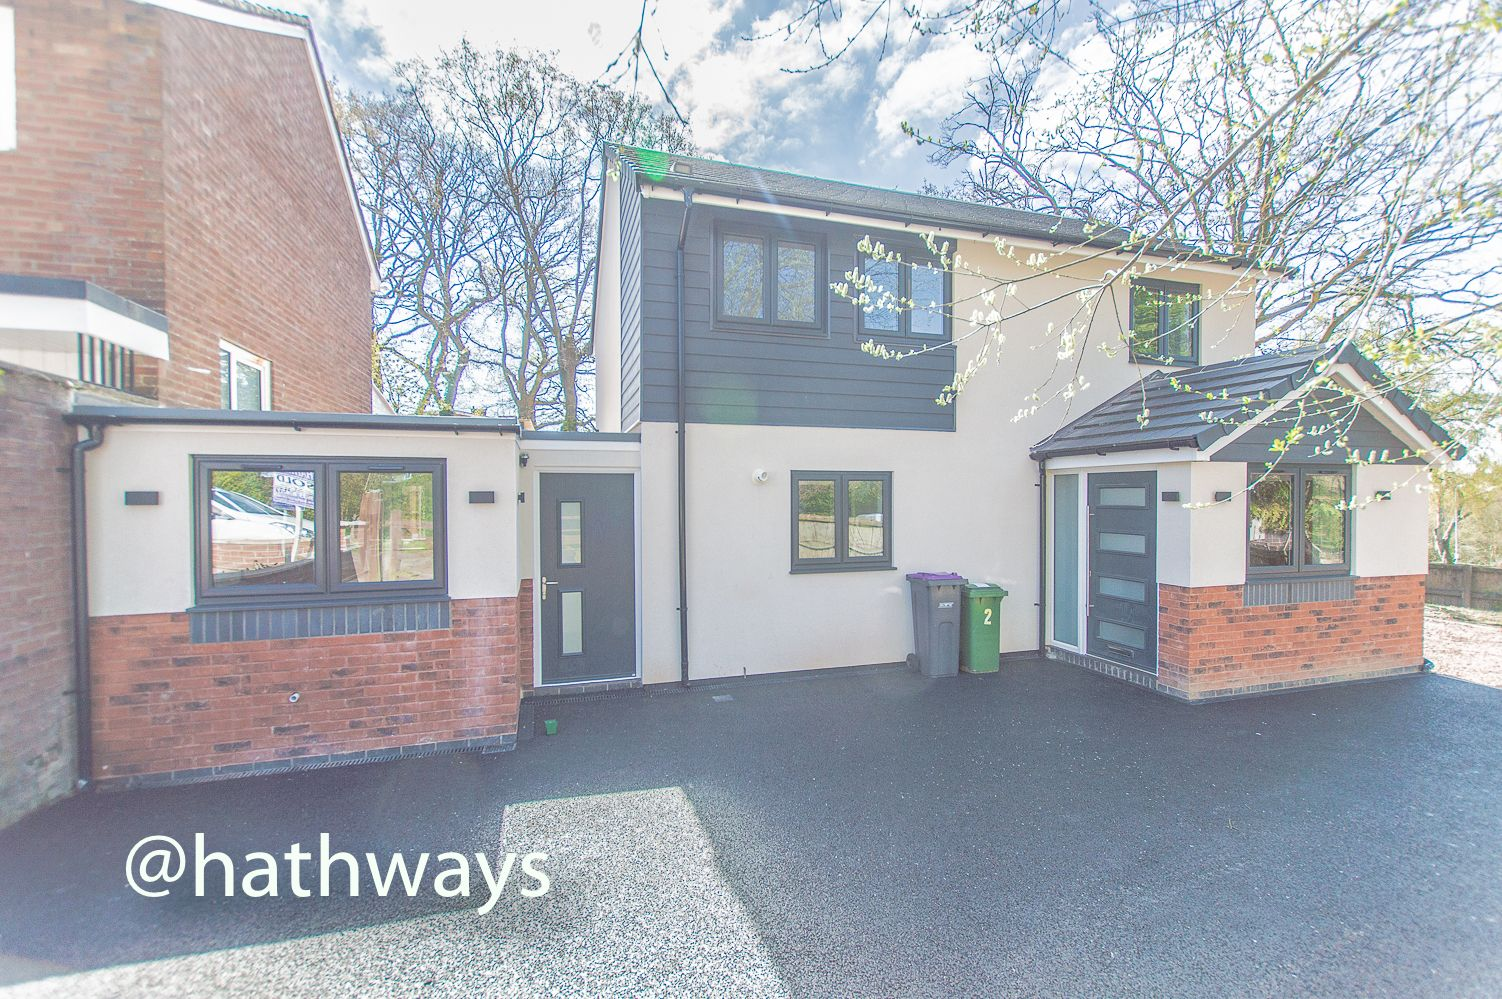 3 bed house for sale in Garw Wood Drive  - Property Image 1